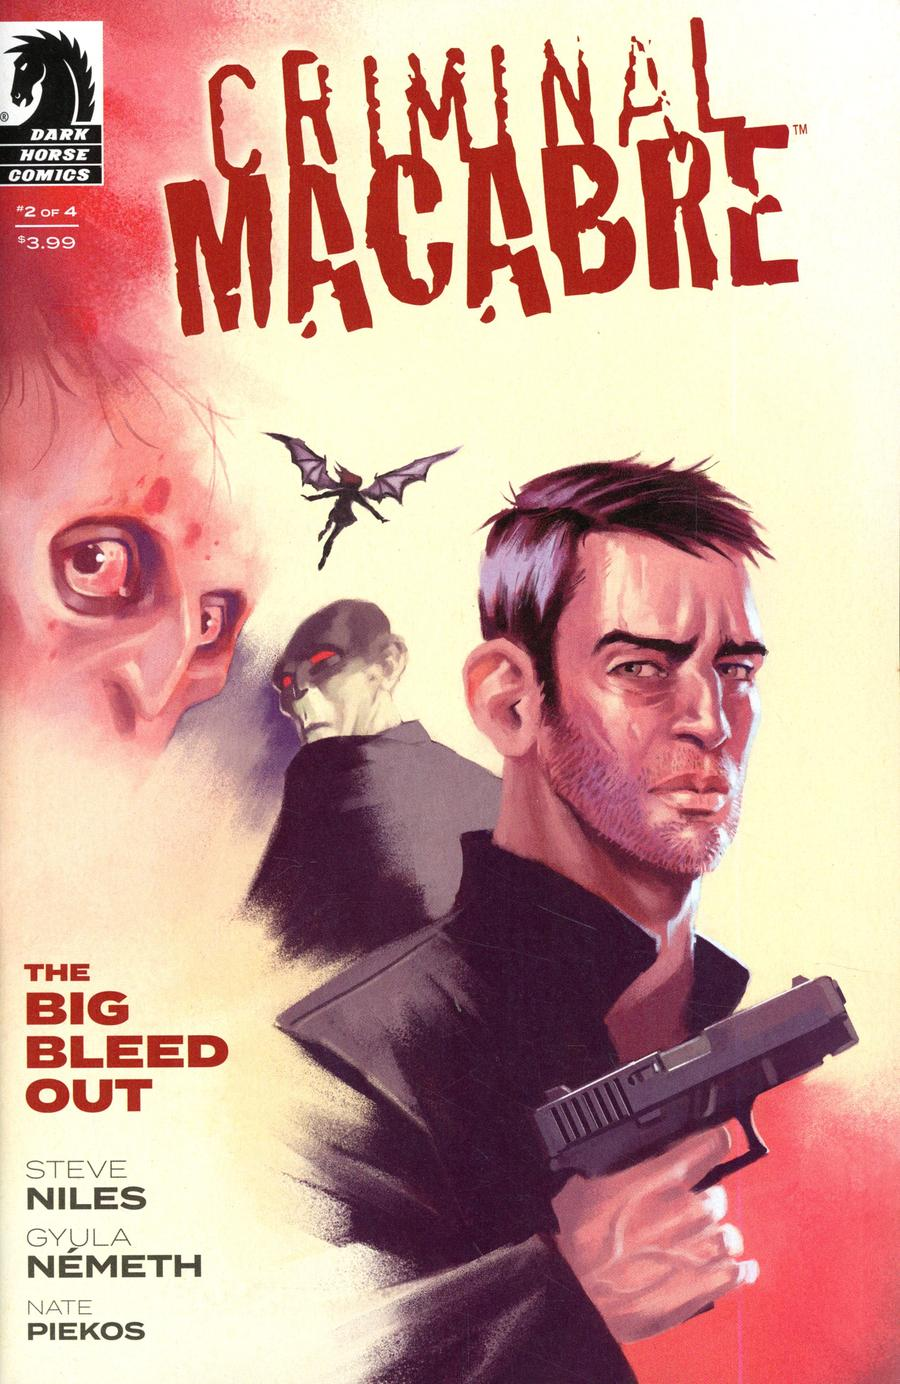 Criminal Macabre: The Big Bleed Out #2 (2020)